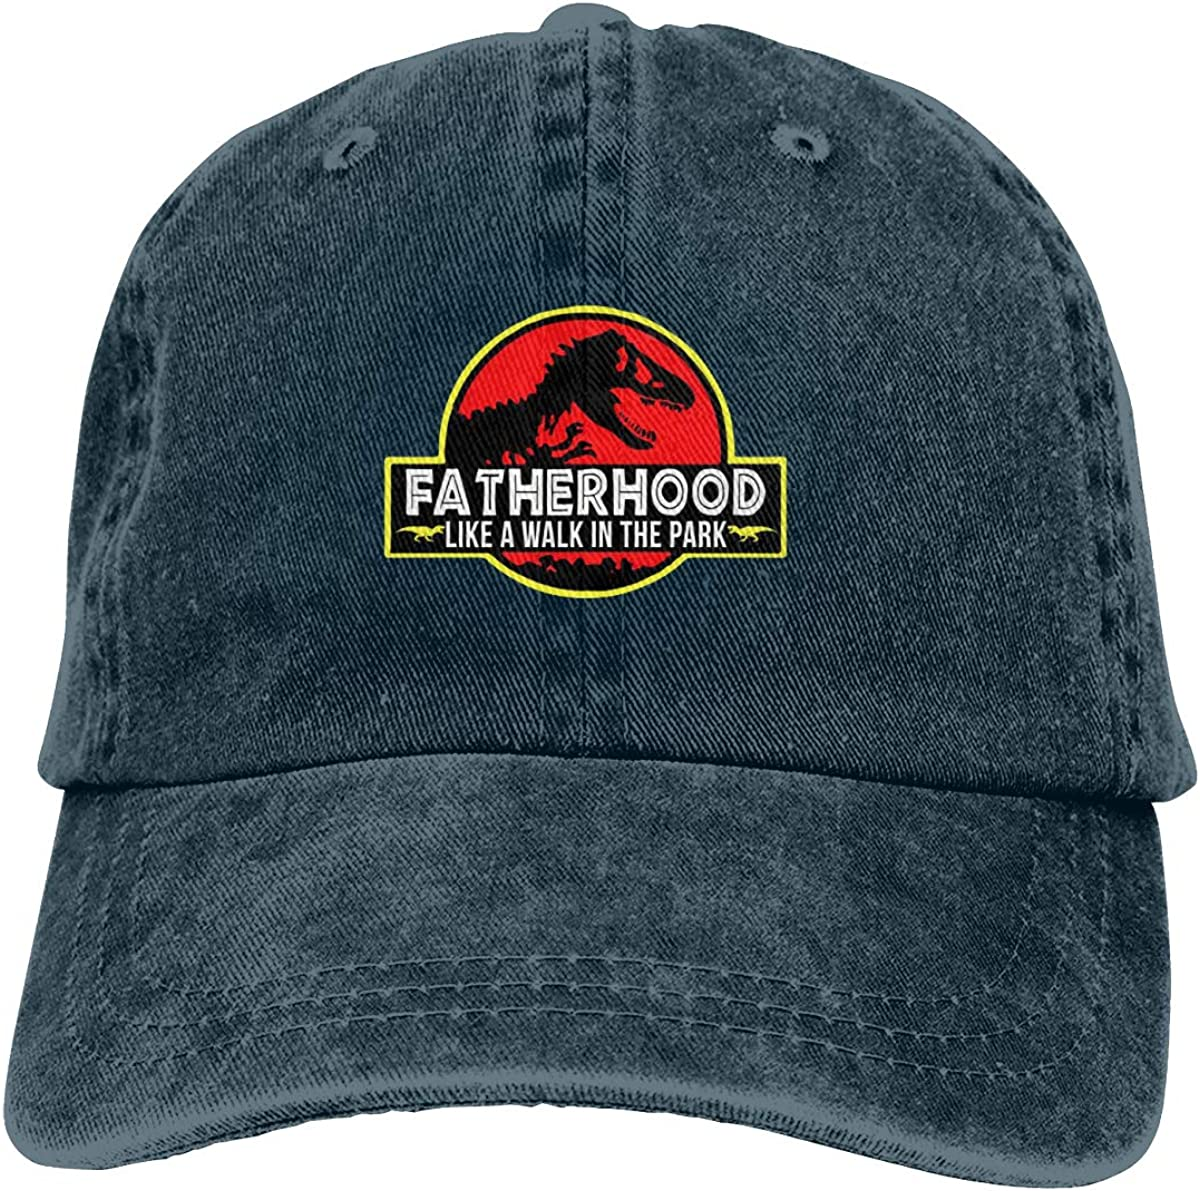 Fatherhood Like A Walk in The Park Sports Cap for Mens and Womens